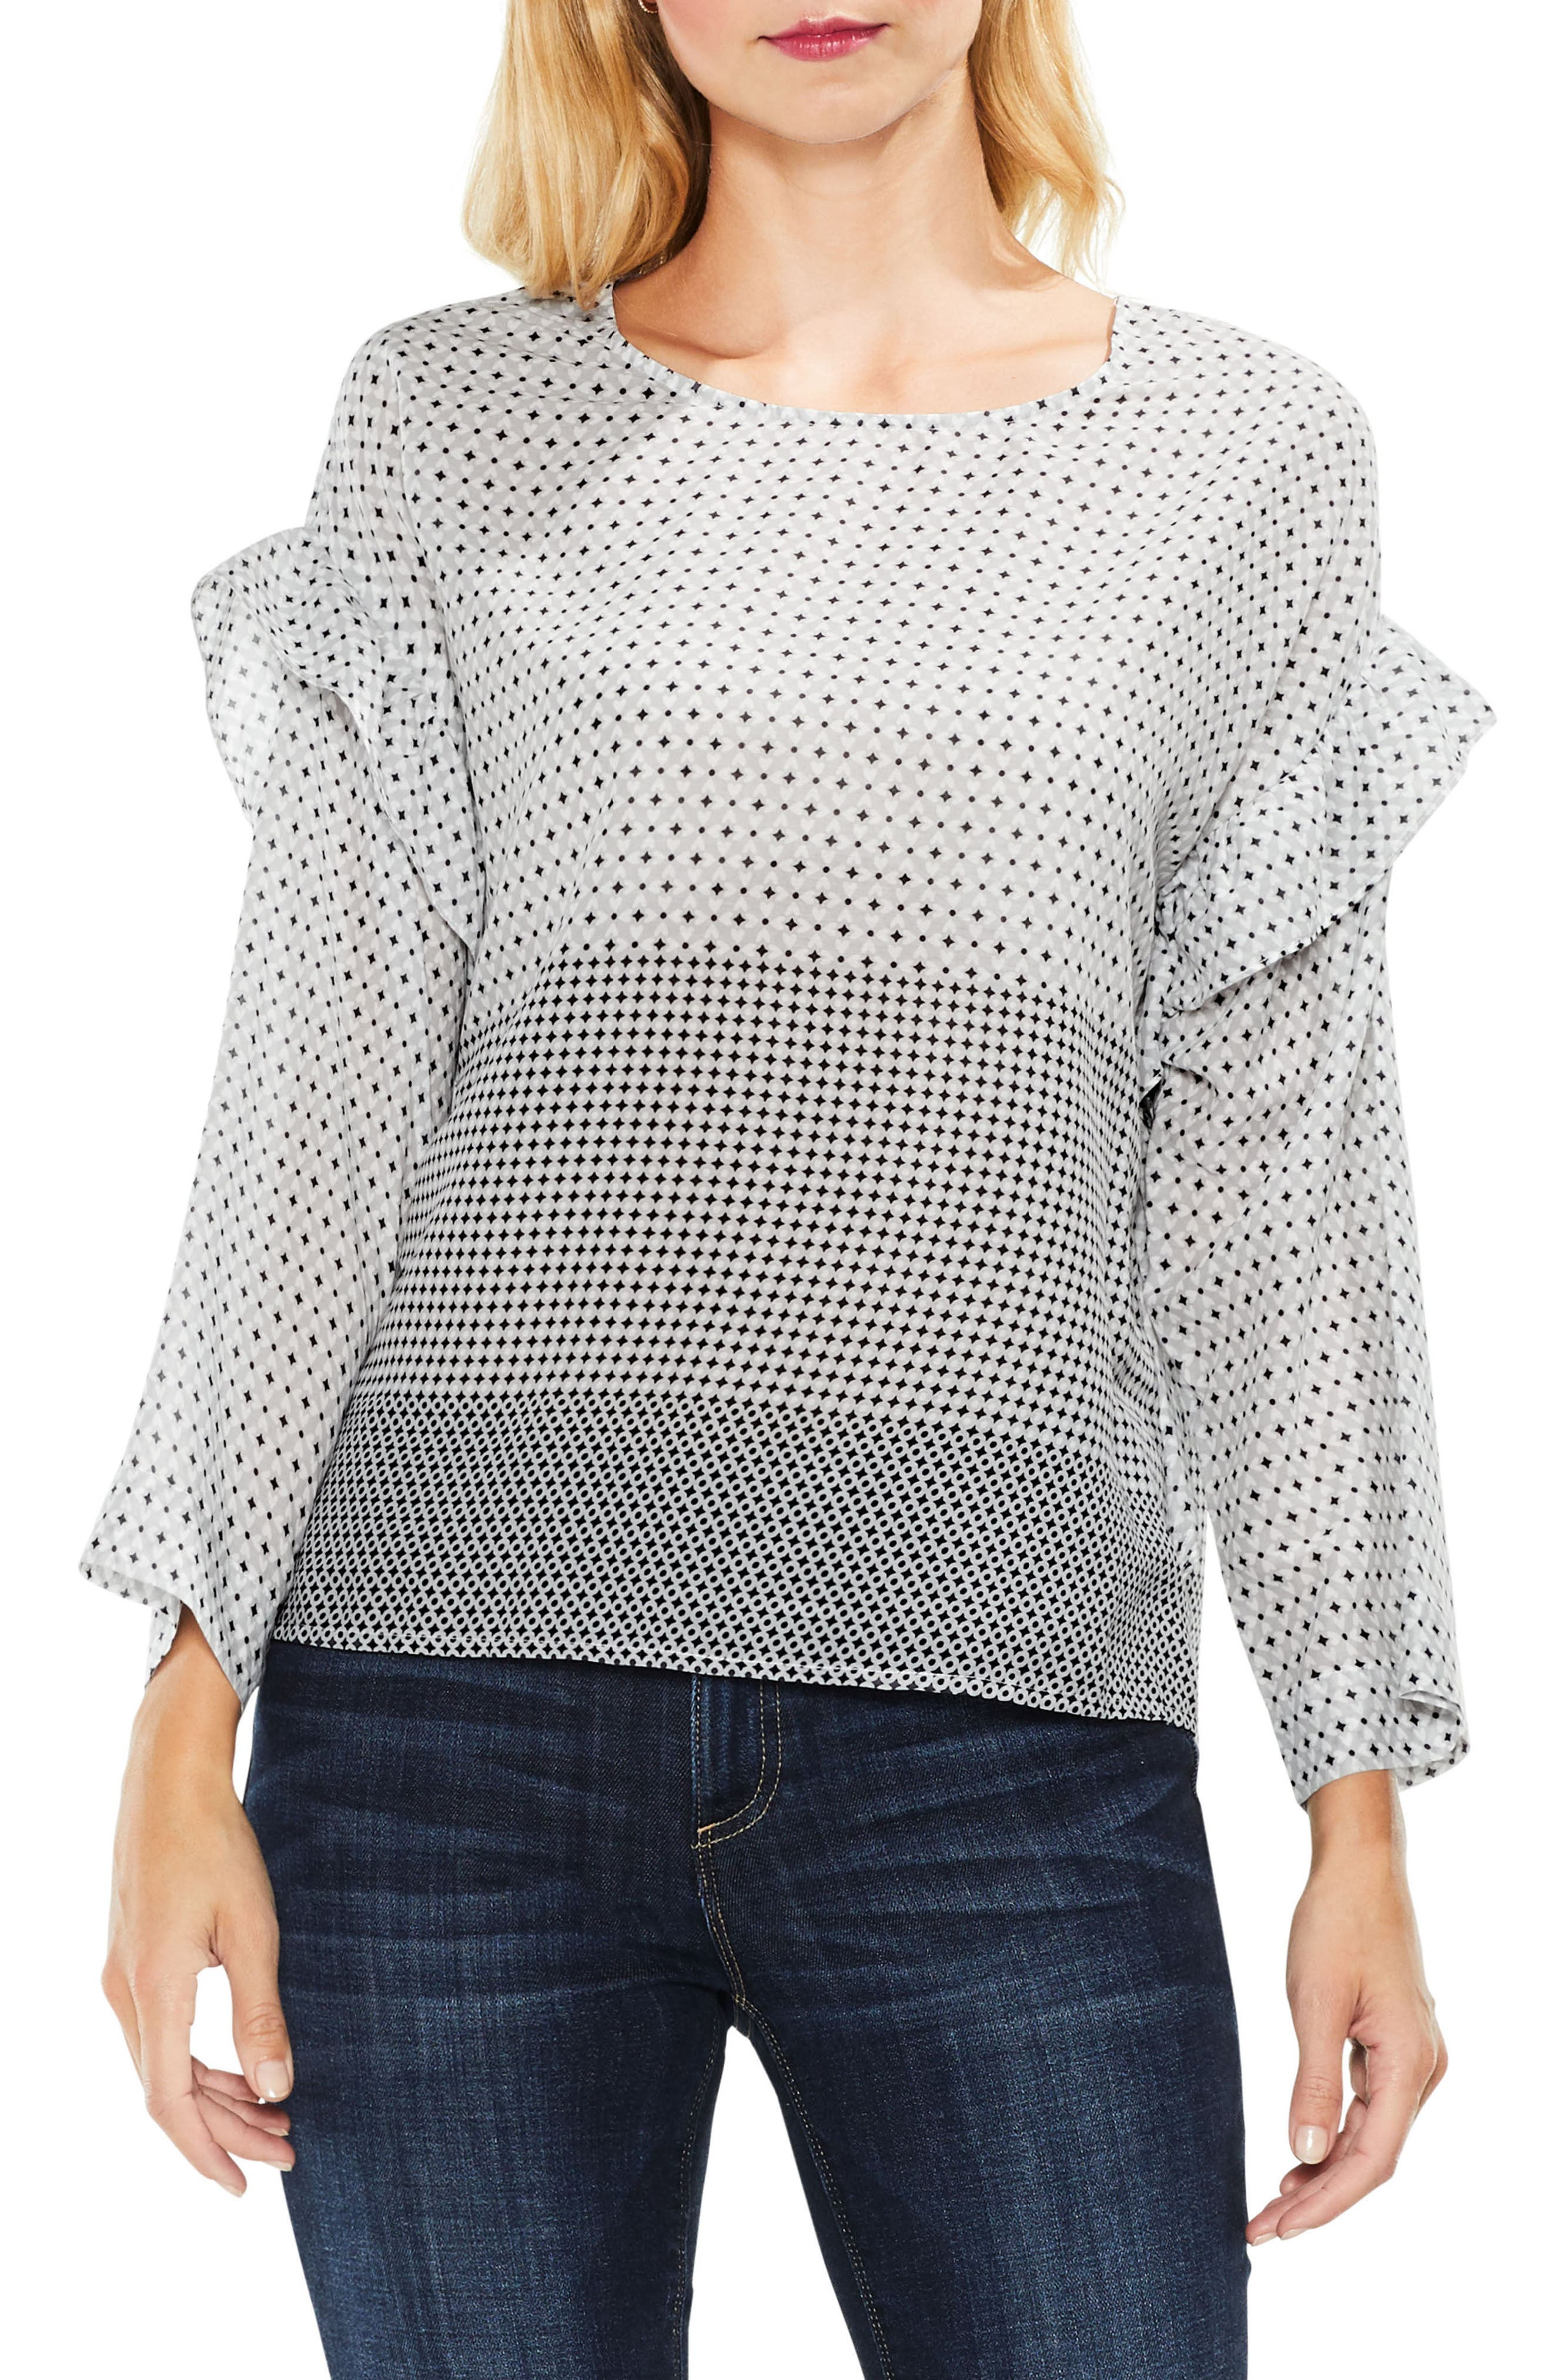 Two by VInce Camuto Quiet Tile Border Ruffle Top,                         Main,                         color, 063